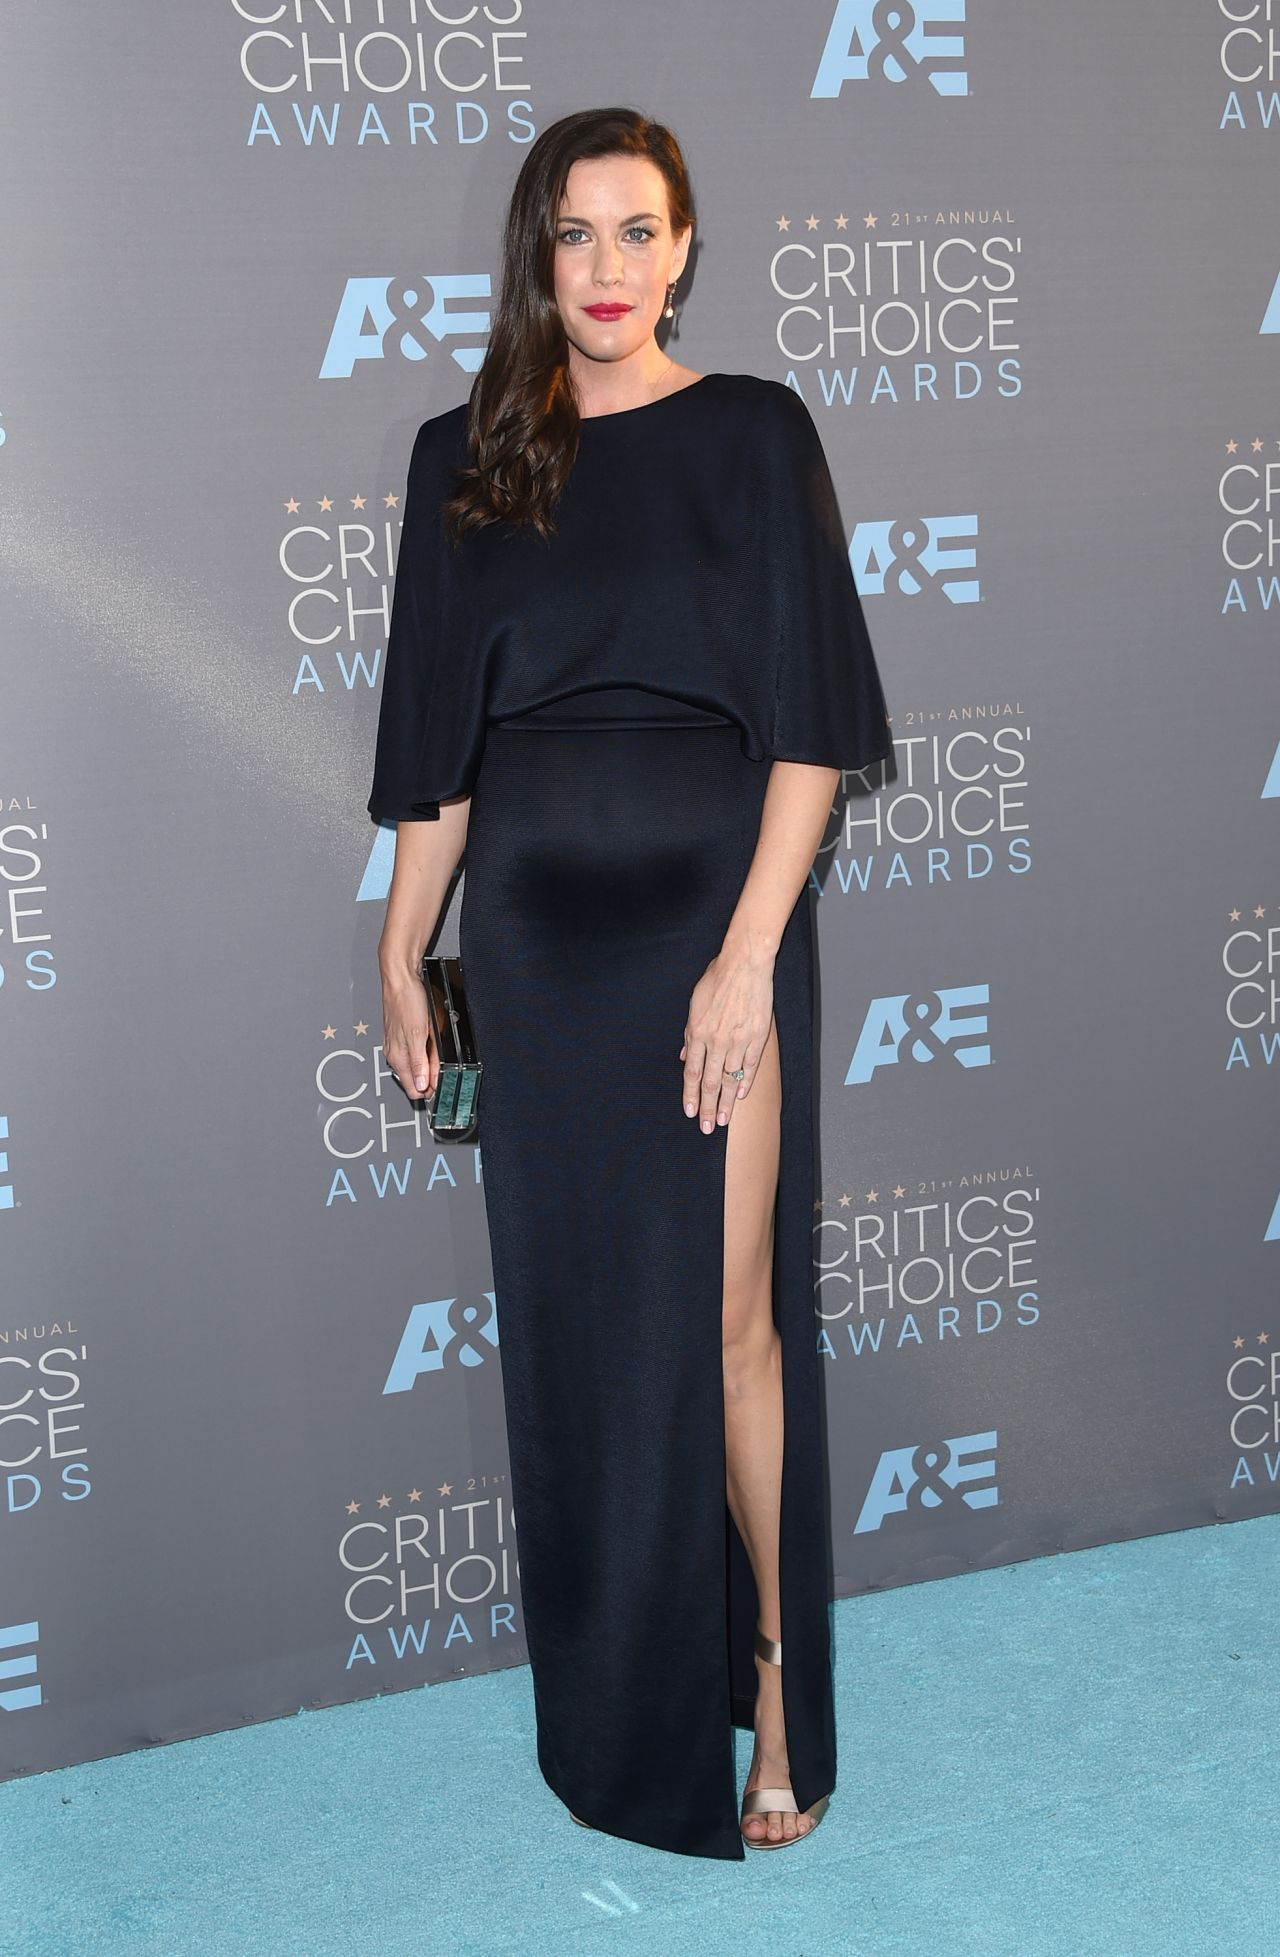 liv-tyler-on-red-carpet-2016-critics-choice-awards-in-santa-monica-1